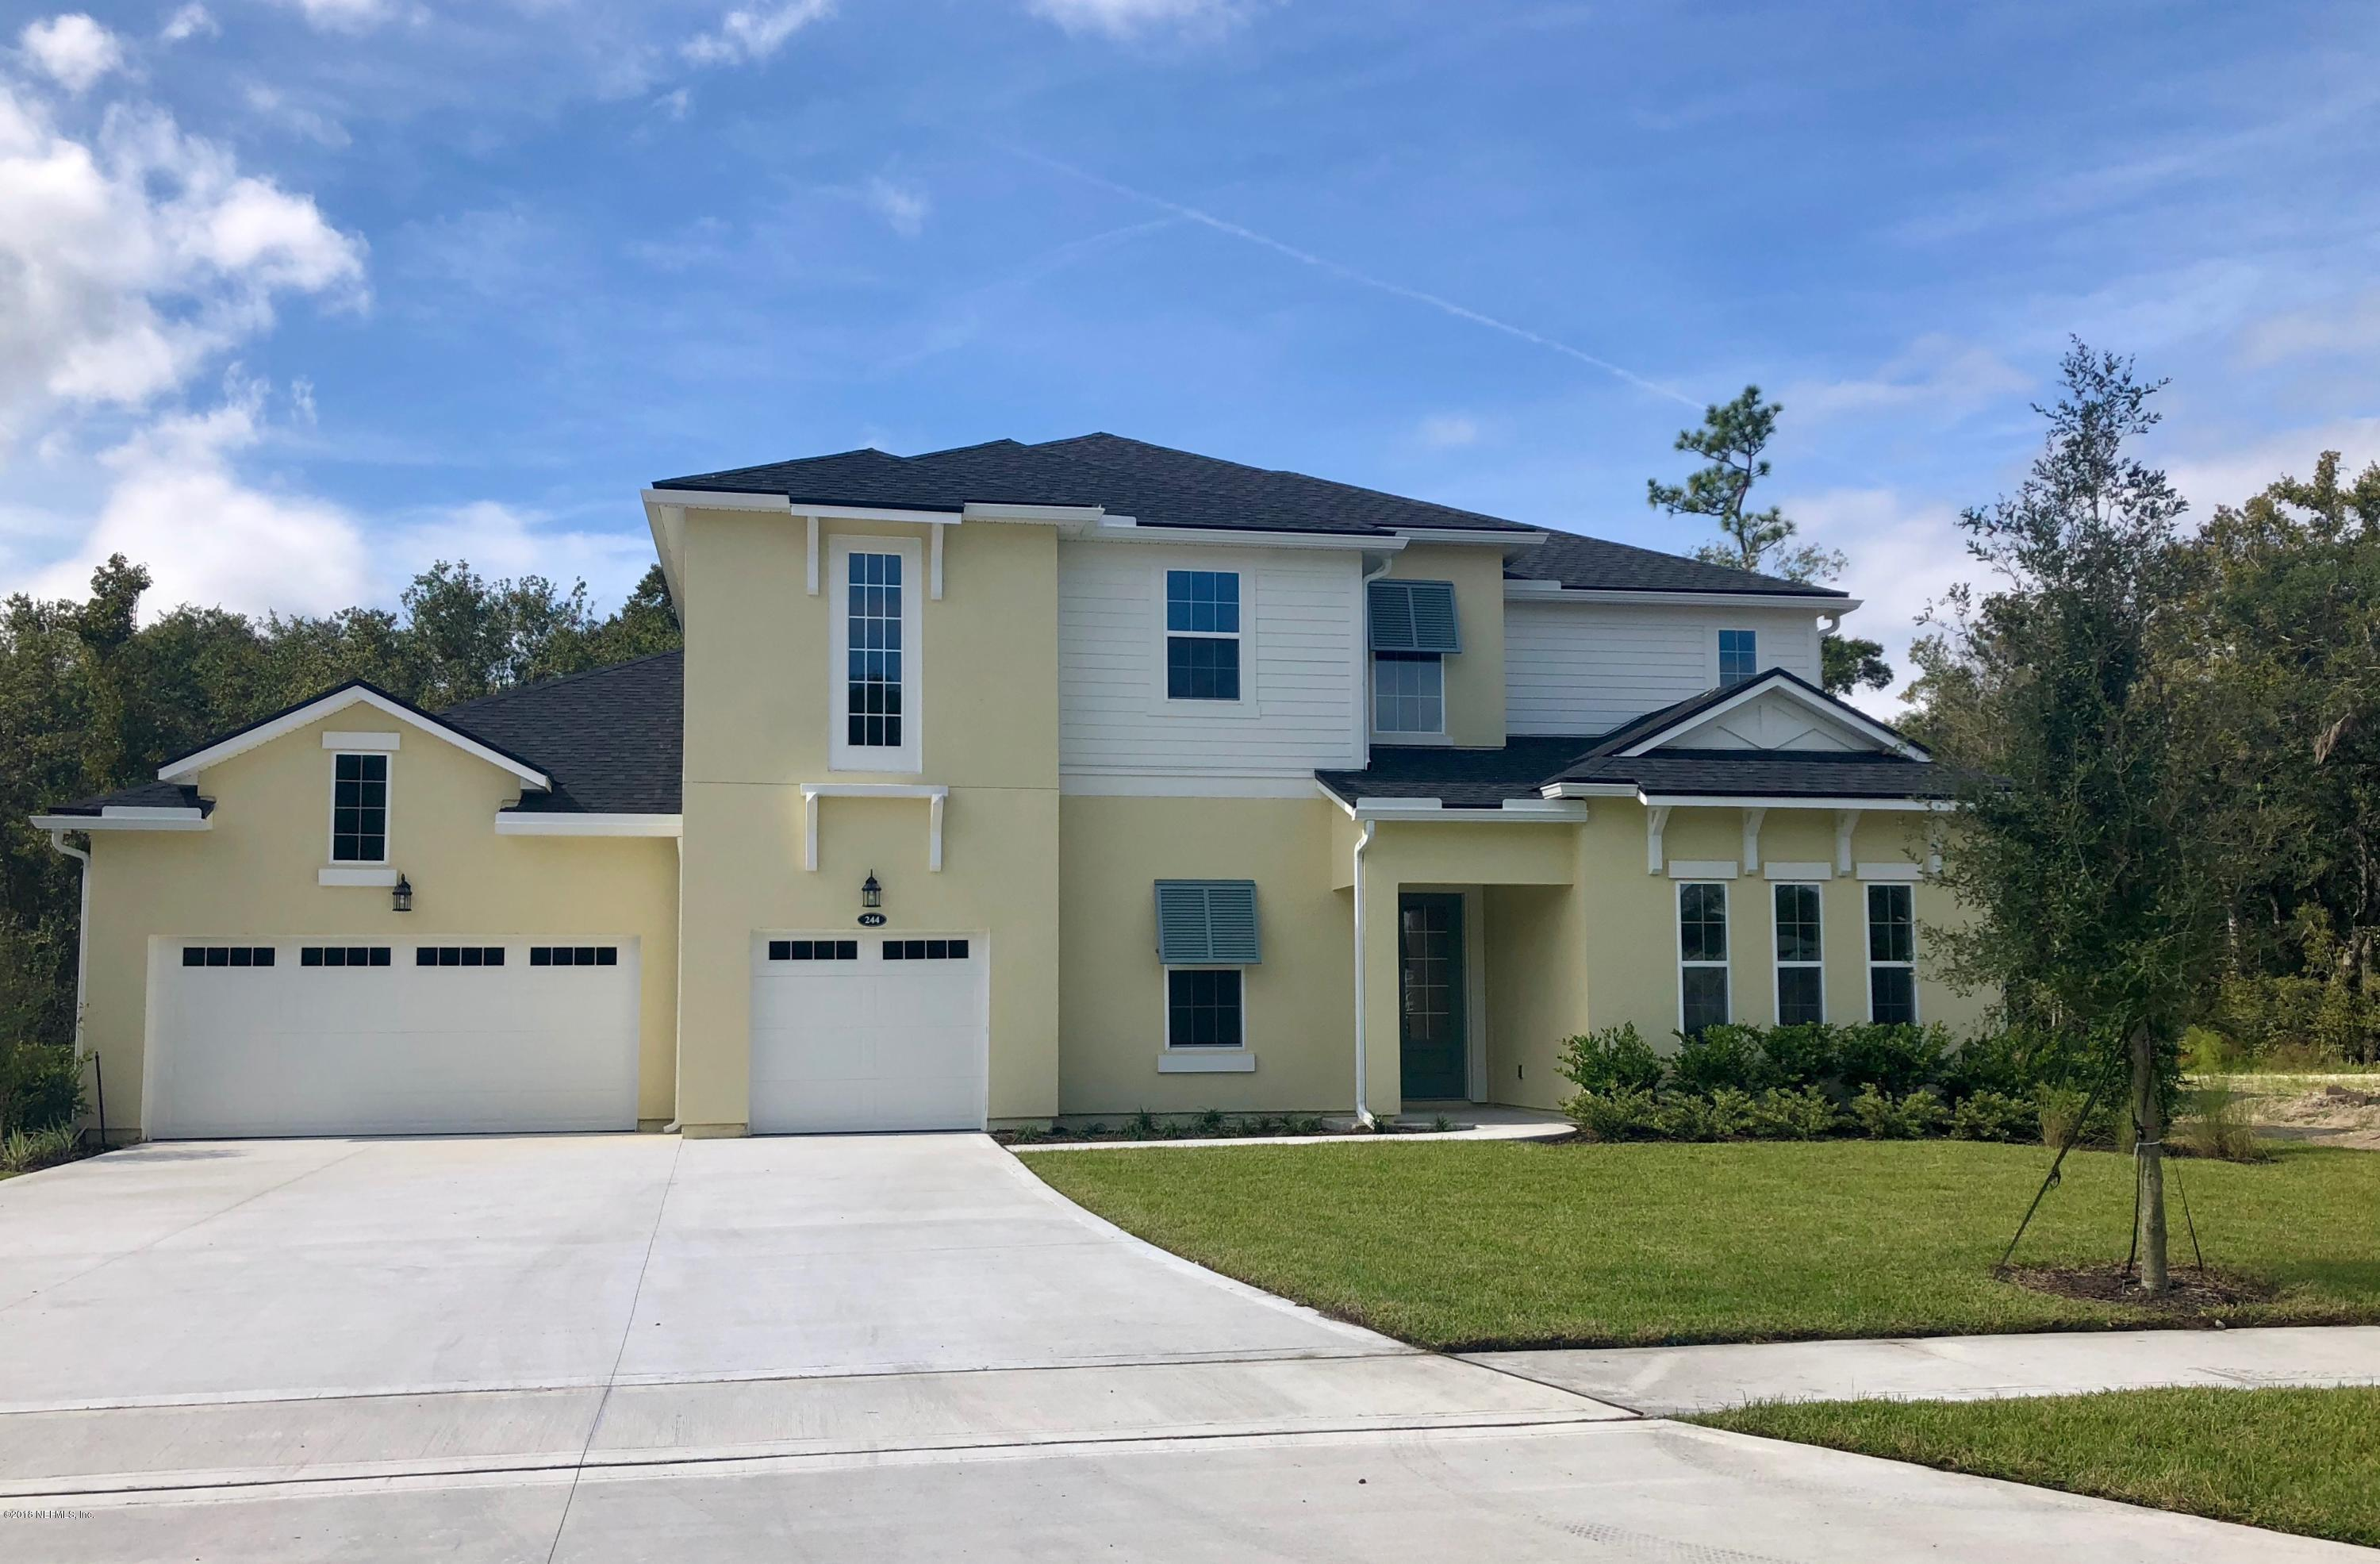 244 BROADLEAF, ST JOHNS, FLORIDA 32259, 4 Bedrooms Bedrooms, ,3 BathroomsBathrooms,Residential - single family,For sale,BROADLEAF,933467